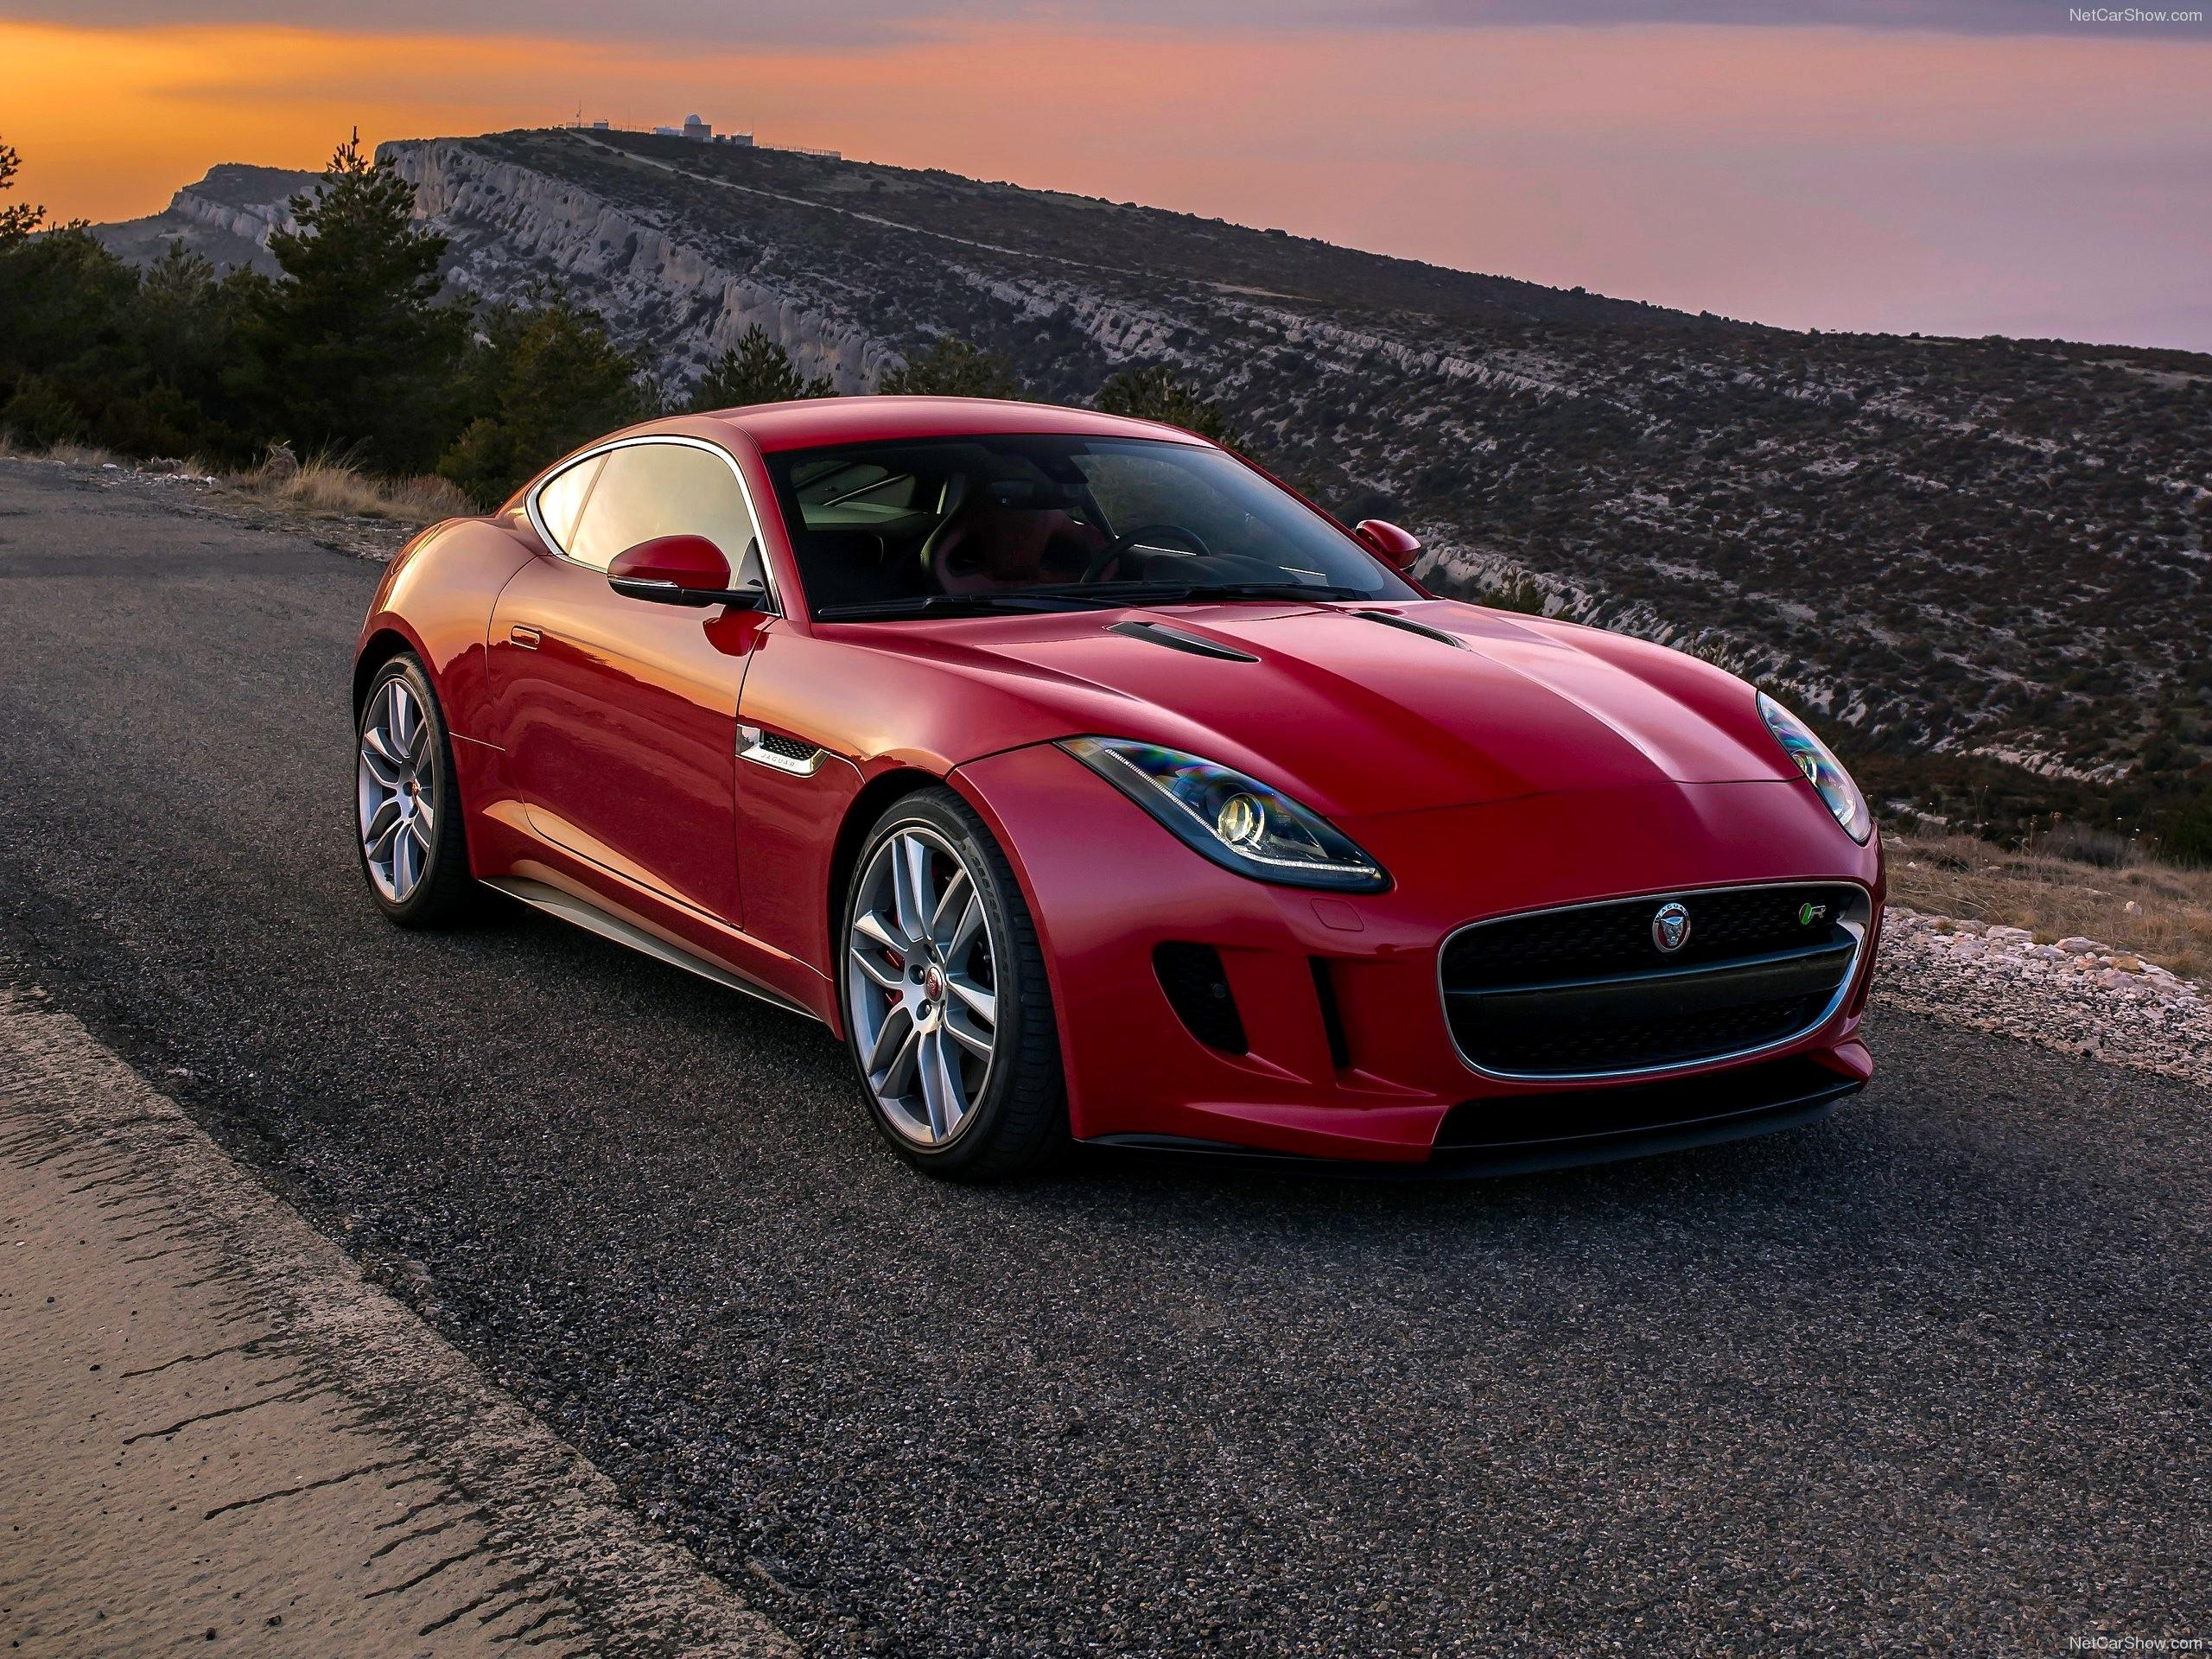 jaguar f type r wallpaper hd download. Black Bedroom Furniture Sets. Home Design Ideas